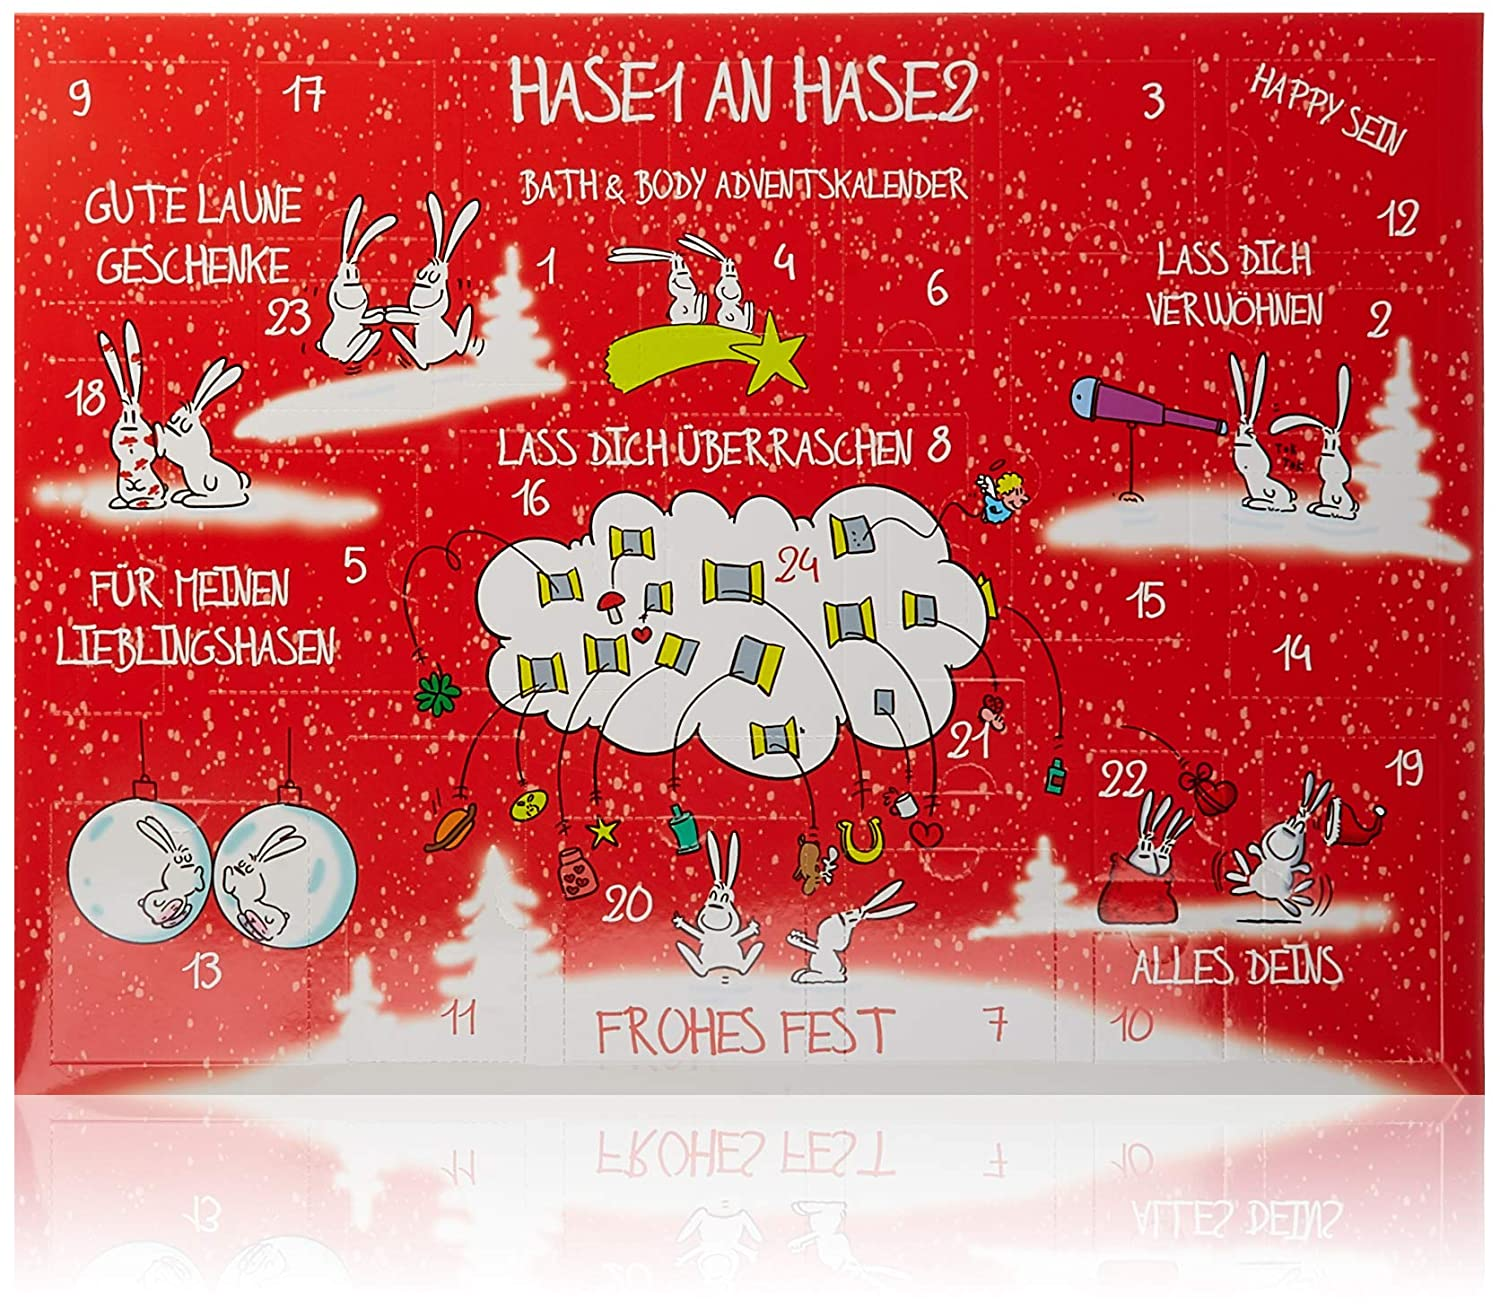 Bath & Body Hase1 an Hase2 – accentra – detail 2